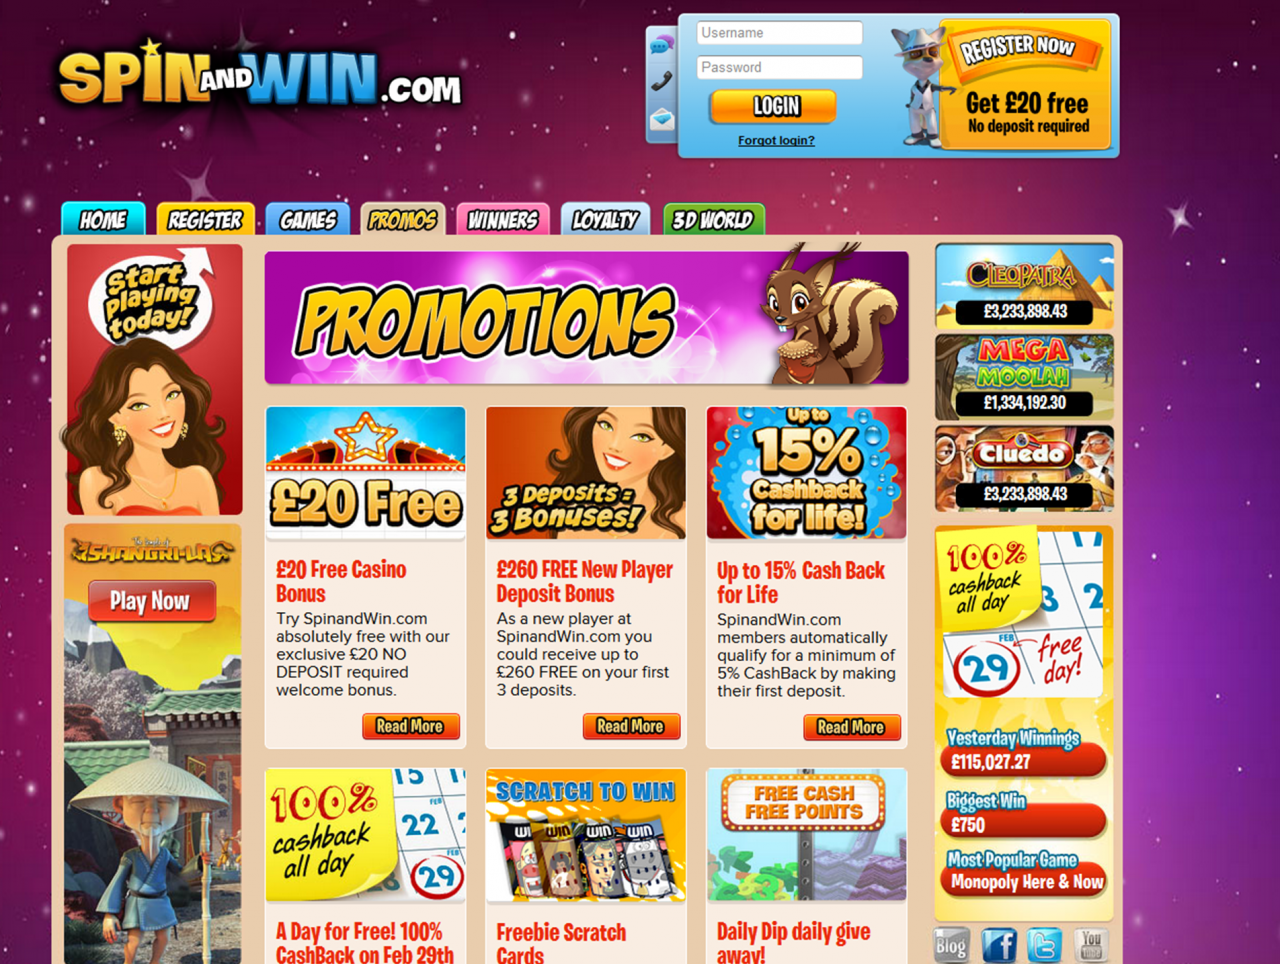 Play Spin And Win Free Online With No Deposit Required At Spinandwin